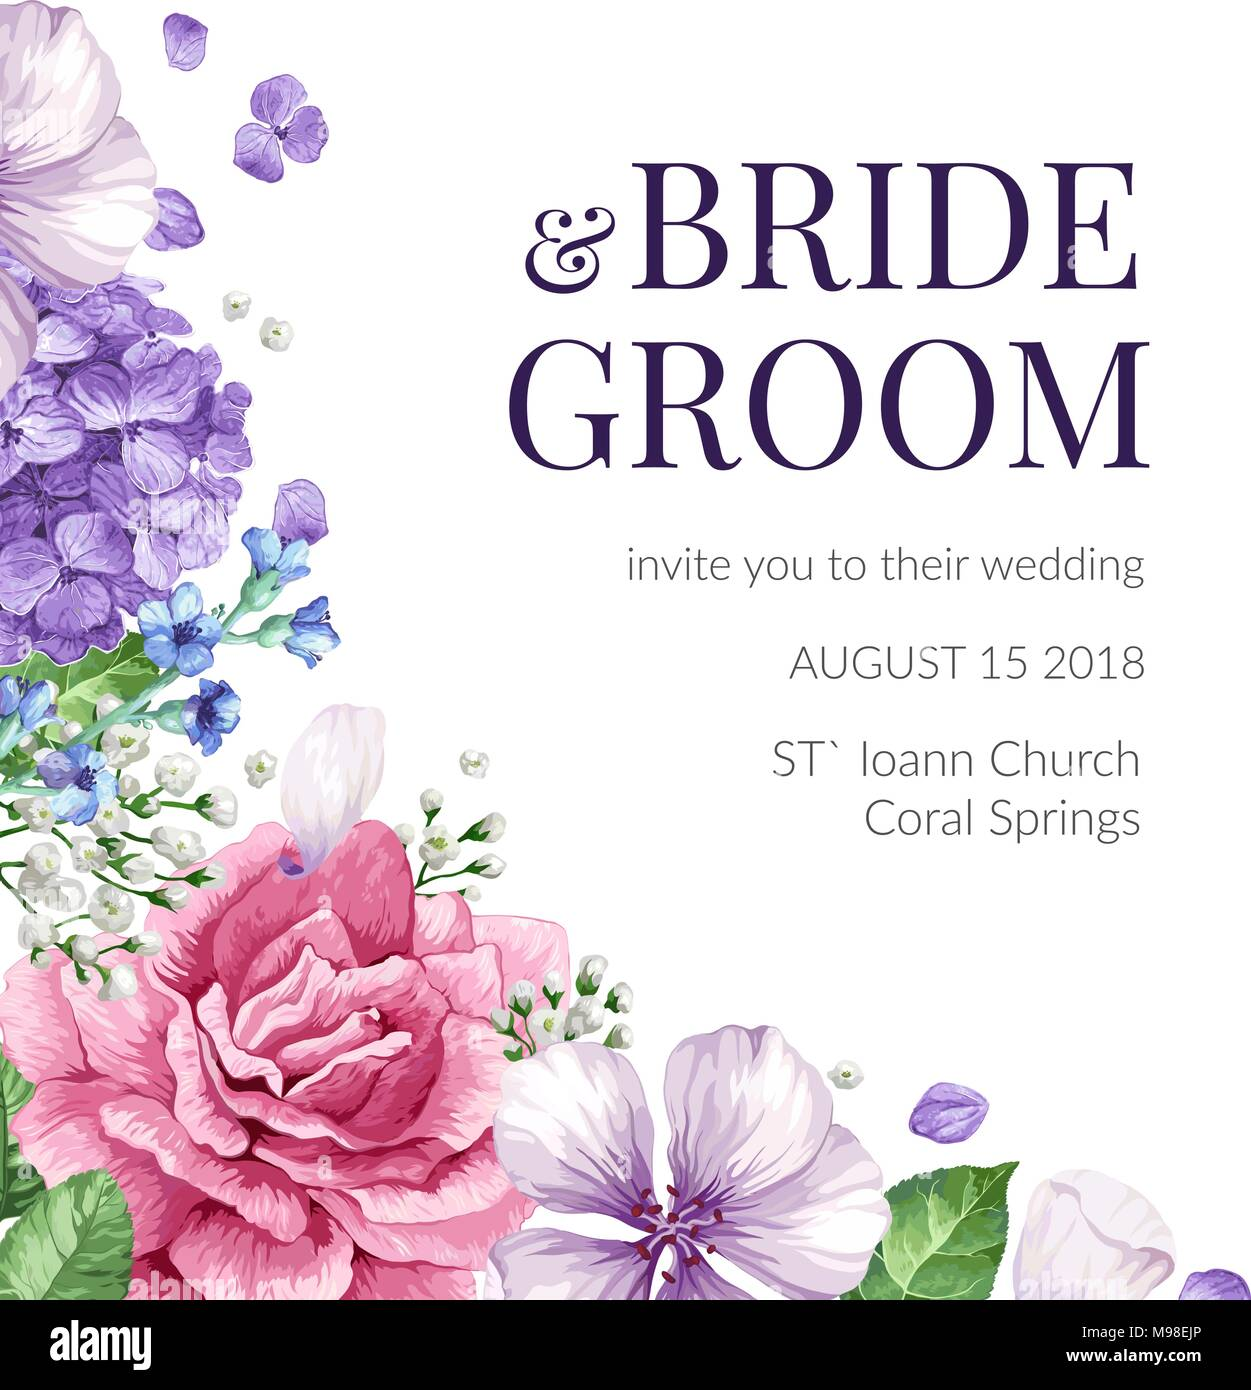 https www alamy com wedding invitation card with flowers in watercolor style on white background template for greeting card image177822702 html